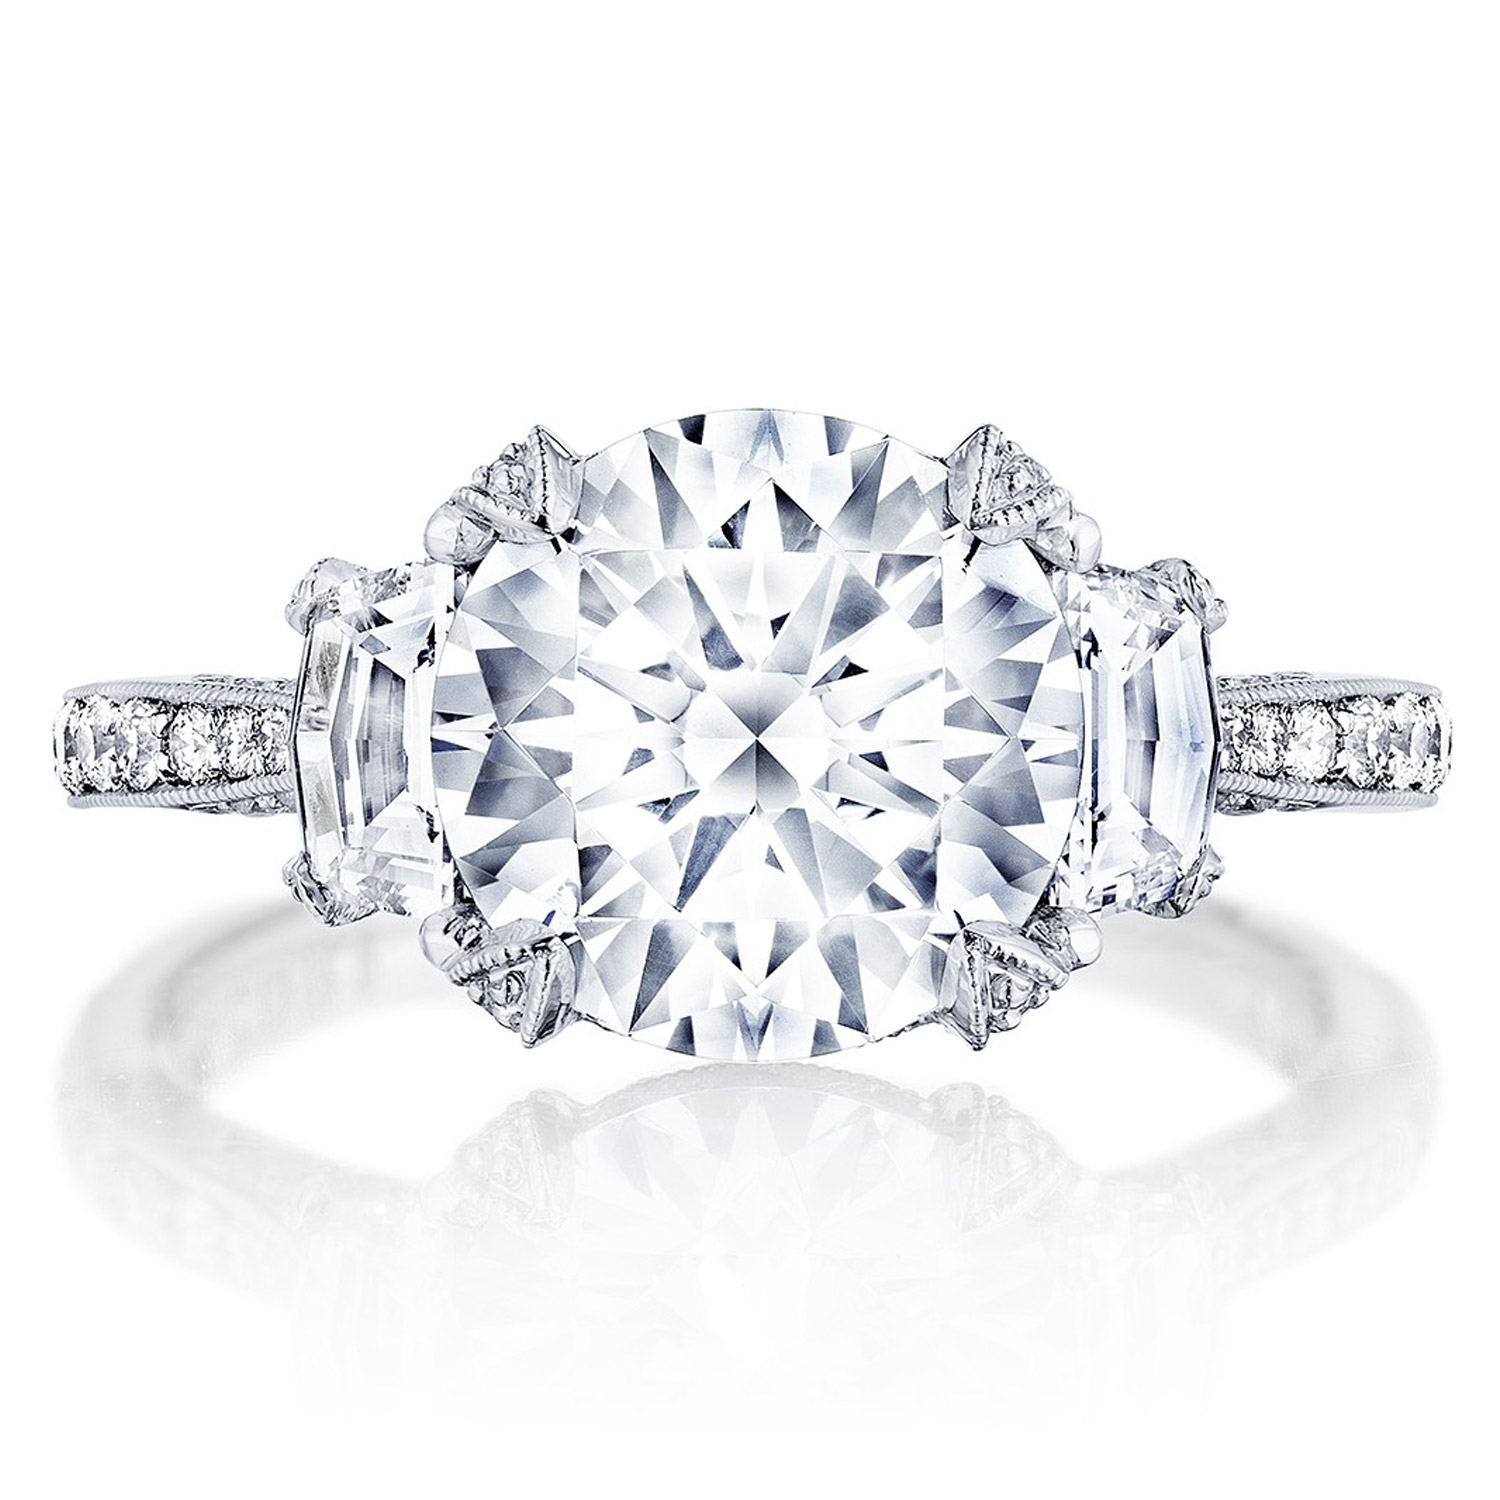 HT2656RD95 Platinum Tacori RoyalT Engagement Ring